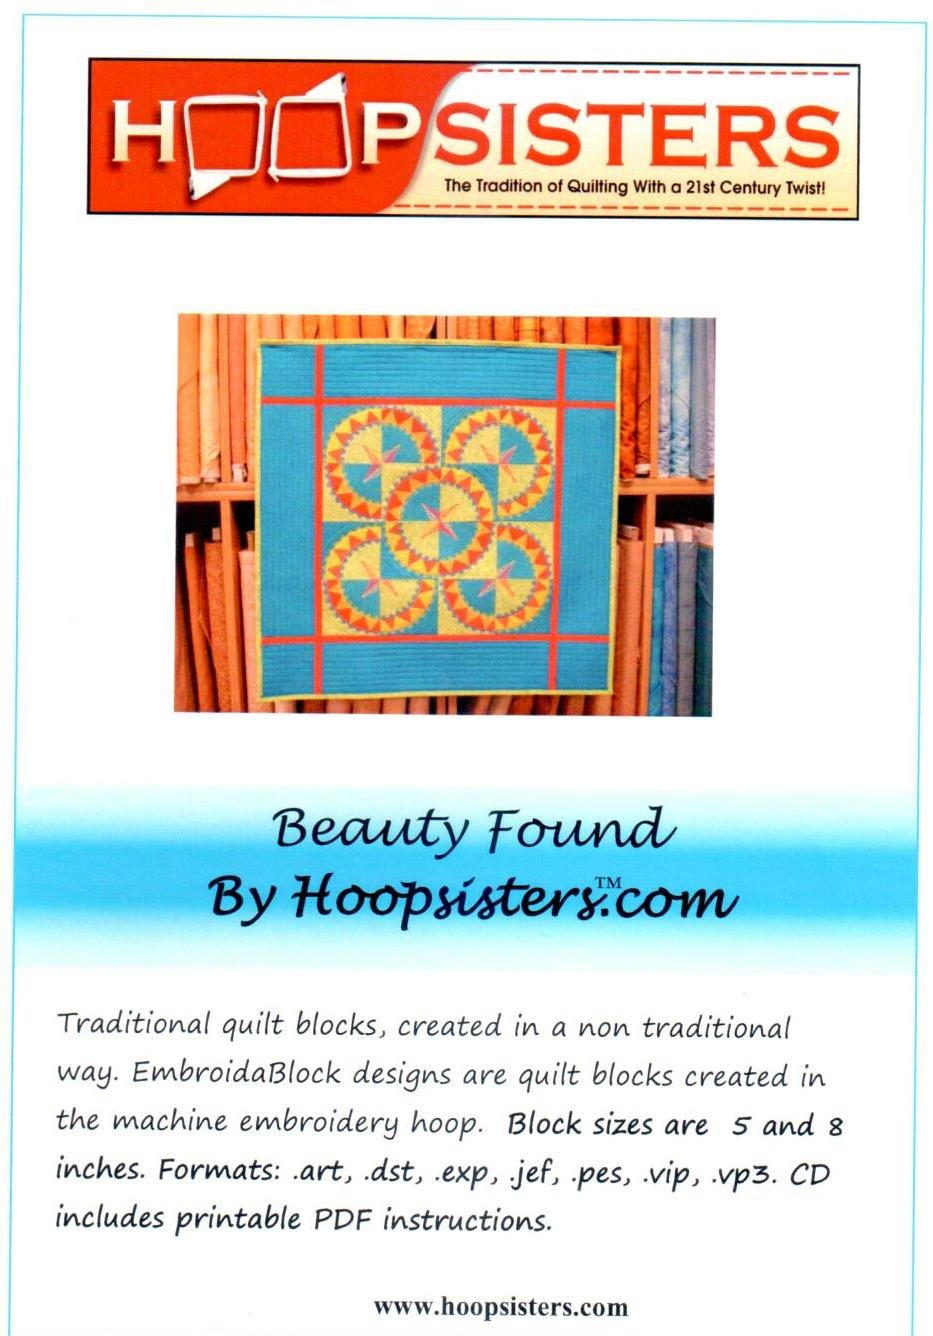 Beauty Found by Hoopsisters